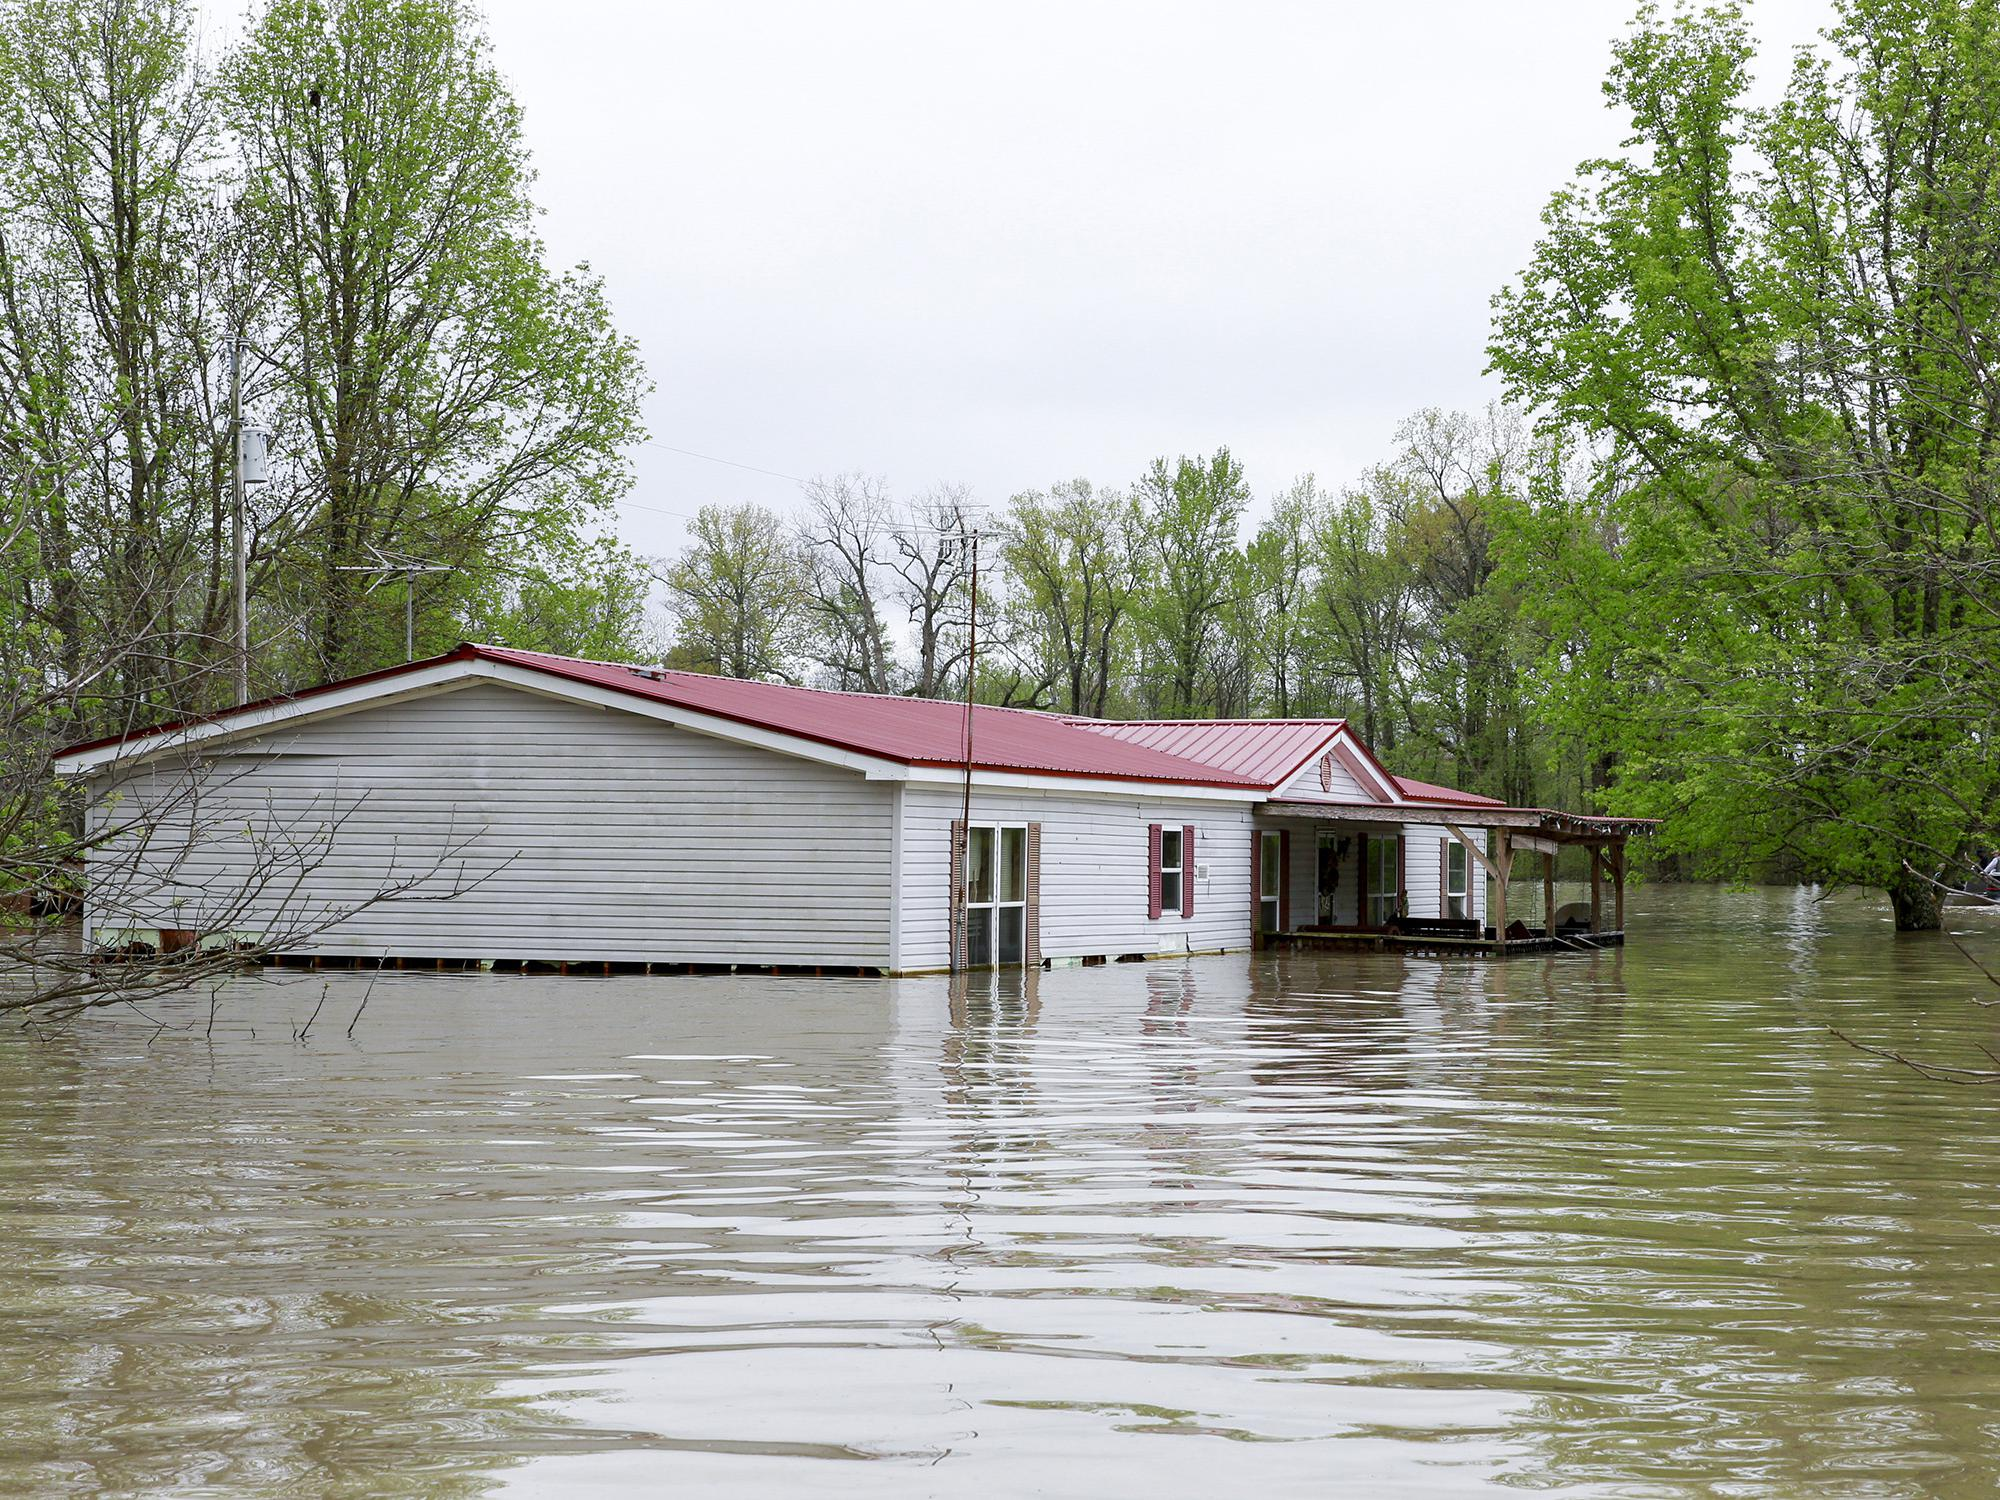 A gray, double-wide manufactured home with flood waters reaching the lower windows and surrounding area